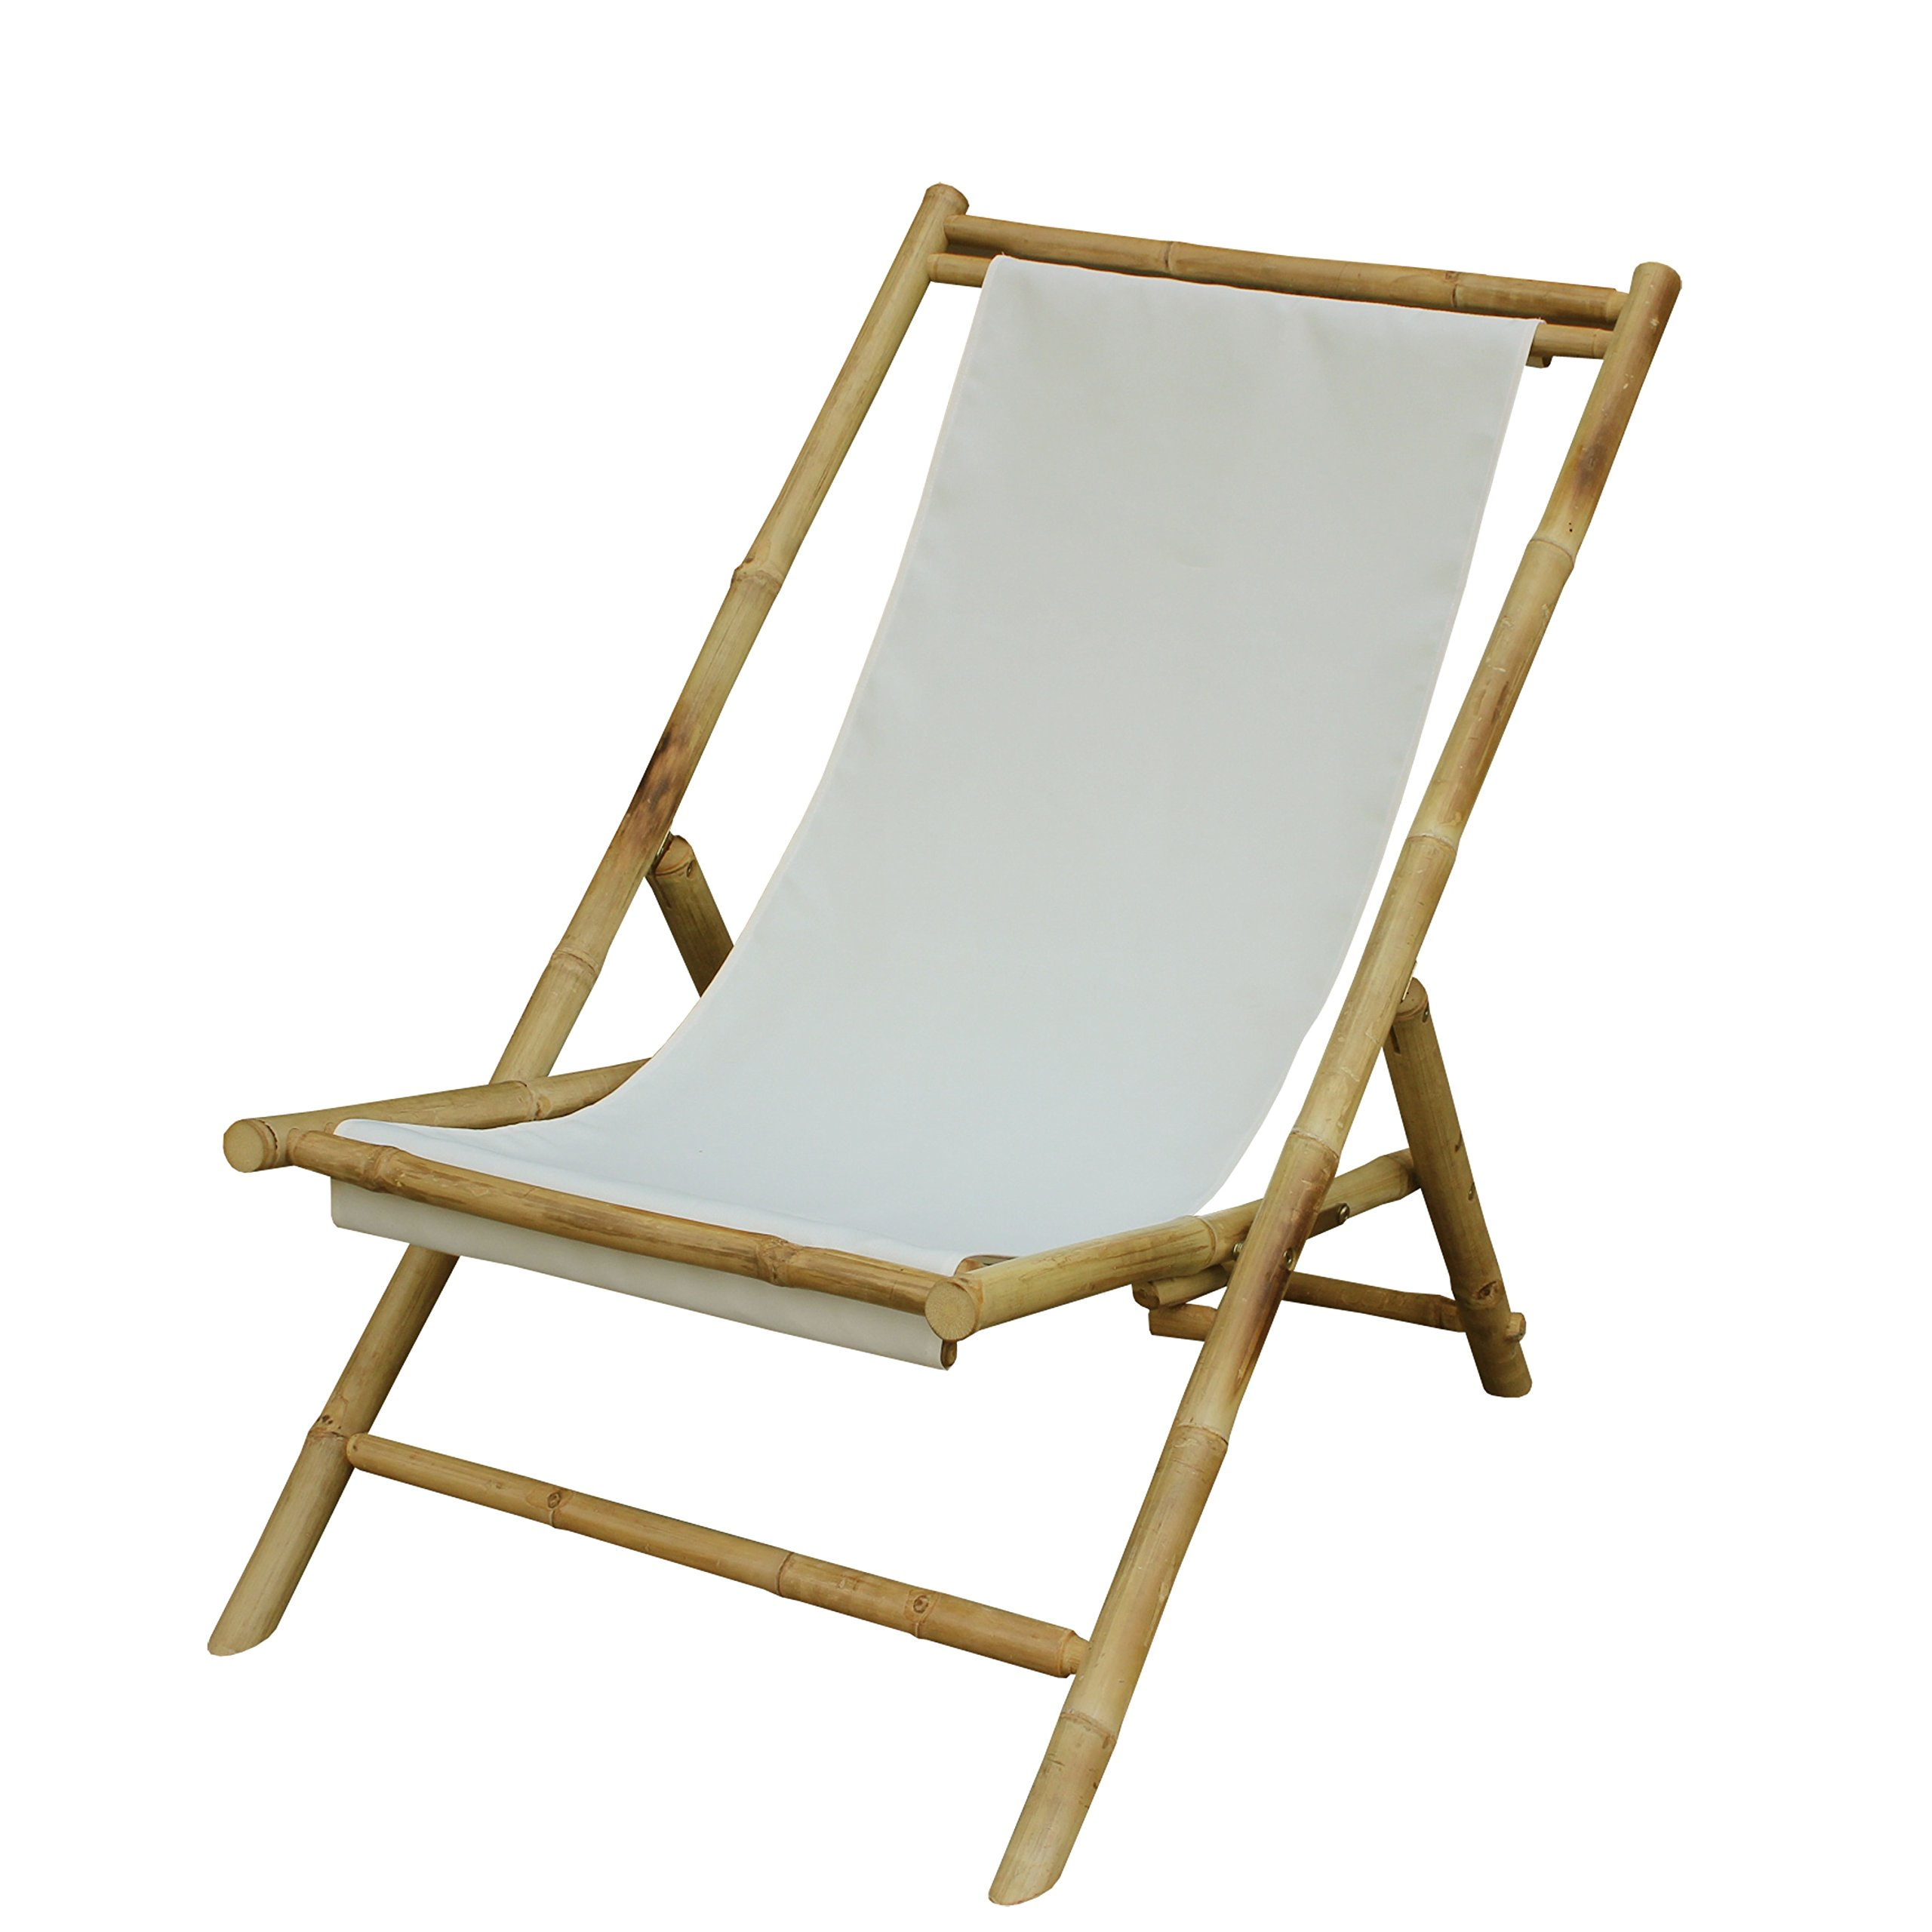 Zew Hand Crafted Foldable Bamboo Sling Patio Chair Celadon